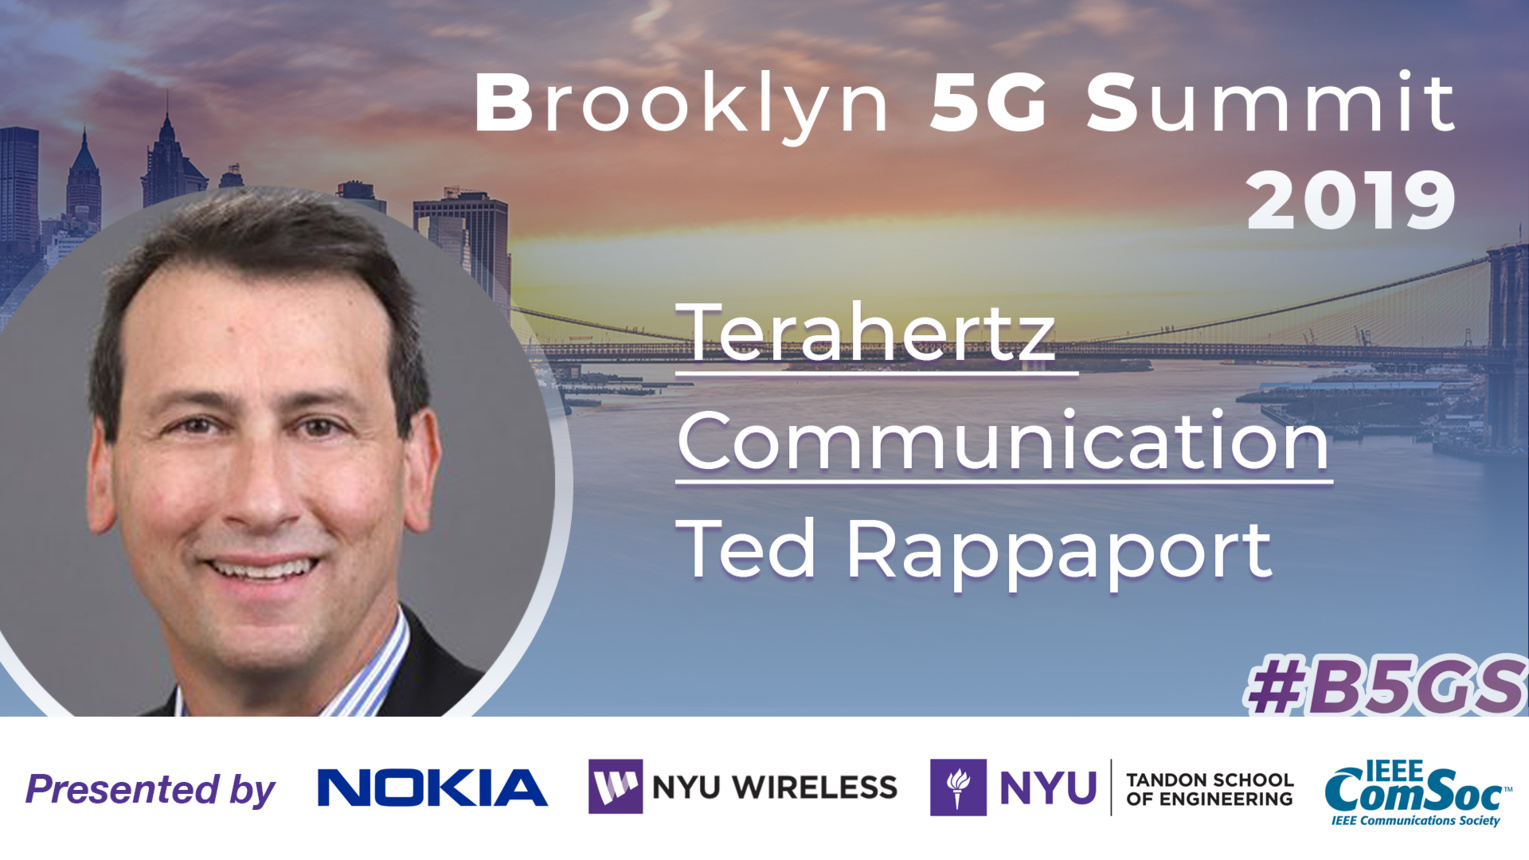 Keynote: Ted Rappaport - Terahertz Communication - B5GS 2019